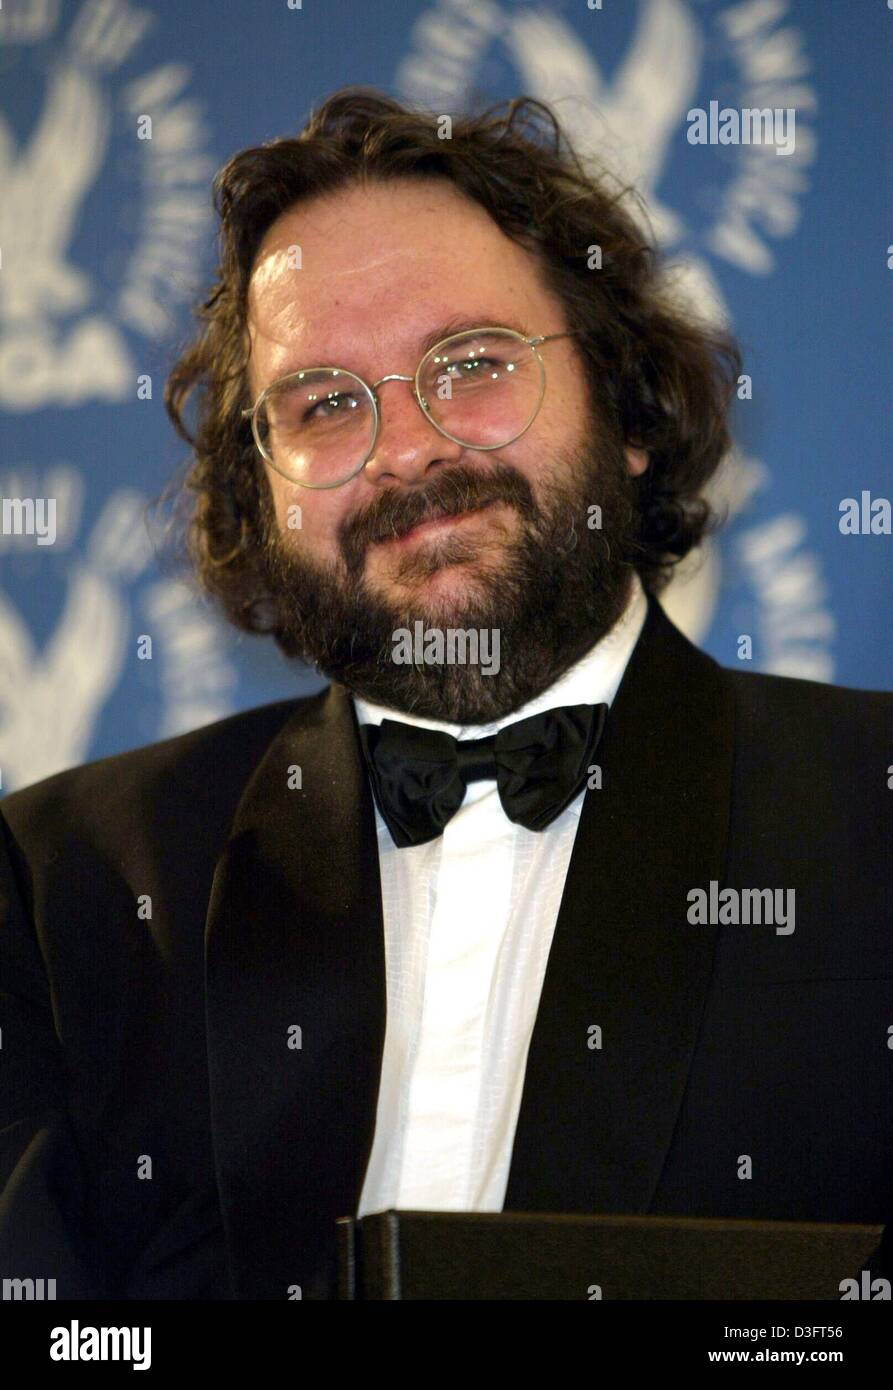 75001652ef17 (dpa) - Film director Peter Jackson from New Zealand smiles backstage of  the Directors Guild of America (DGA) awards show in Los Angeles, 1 March  2003.